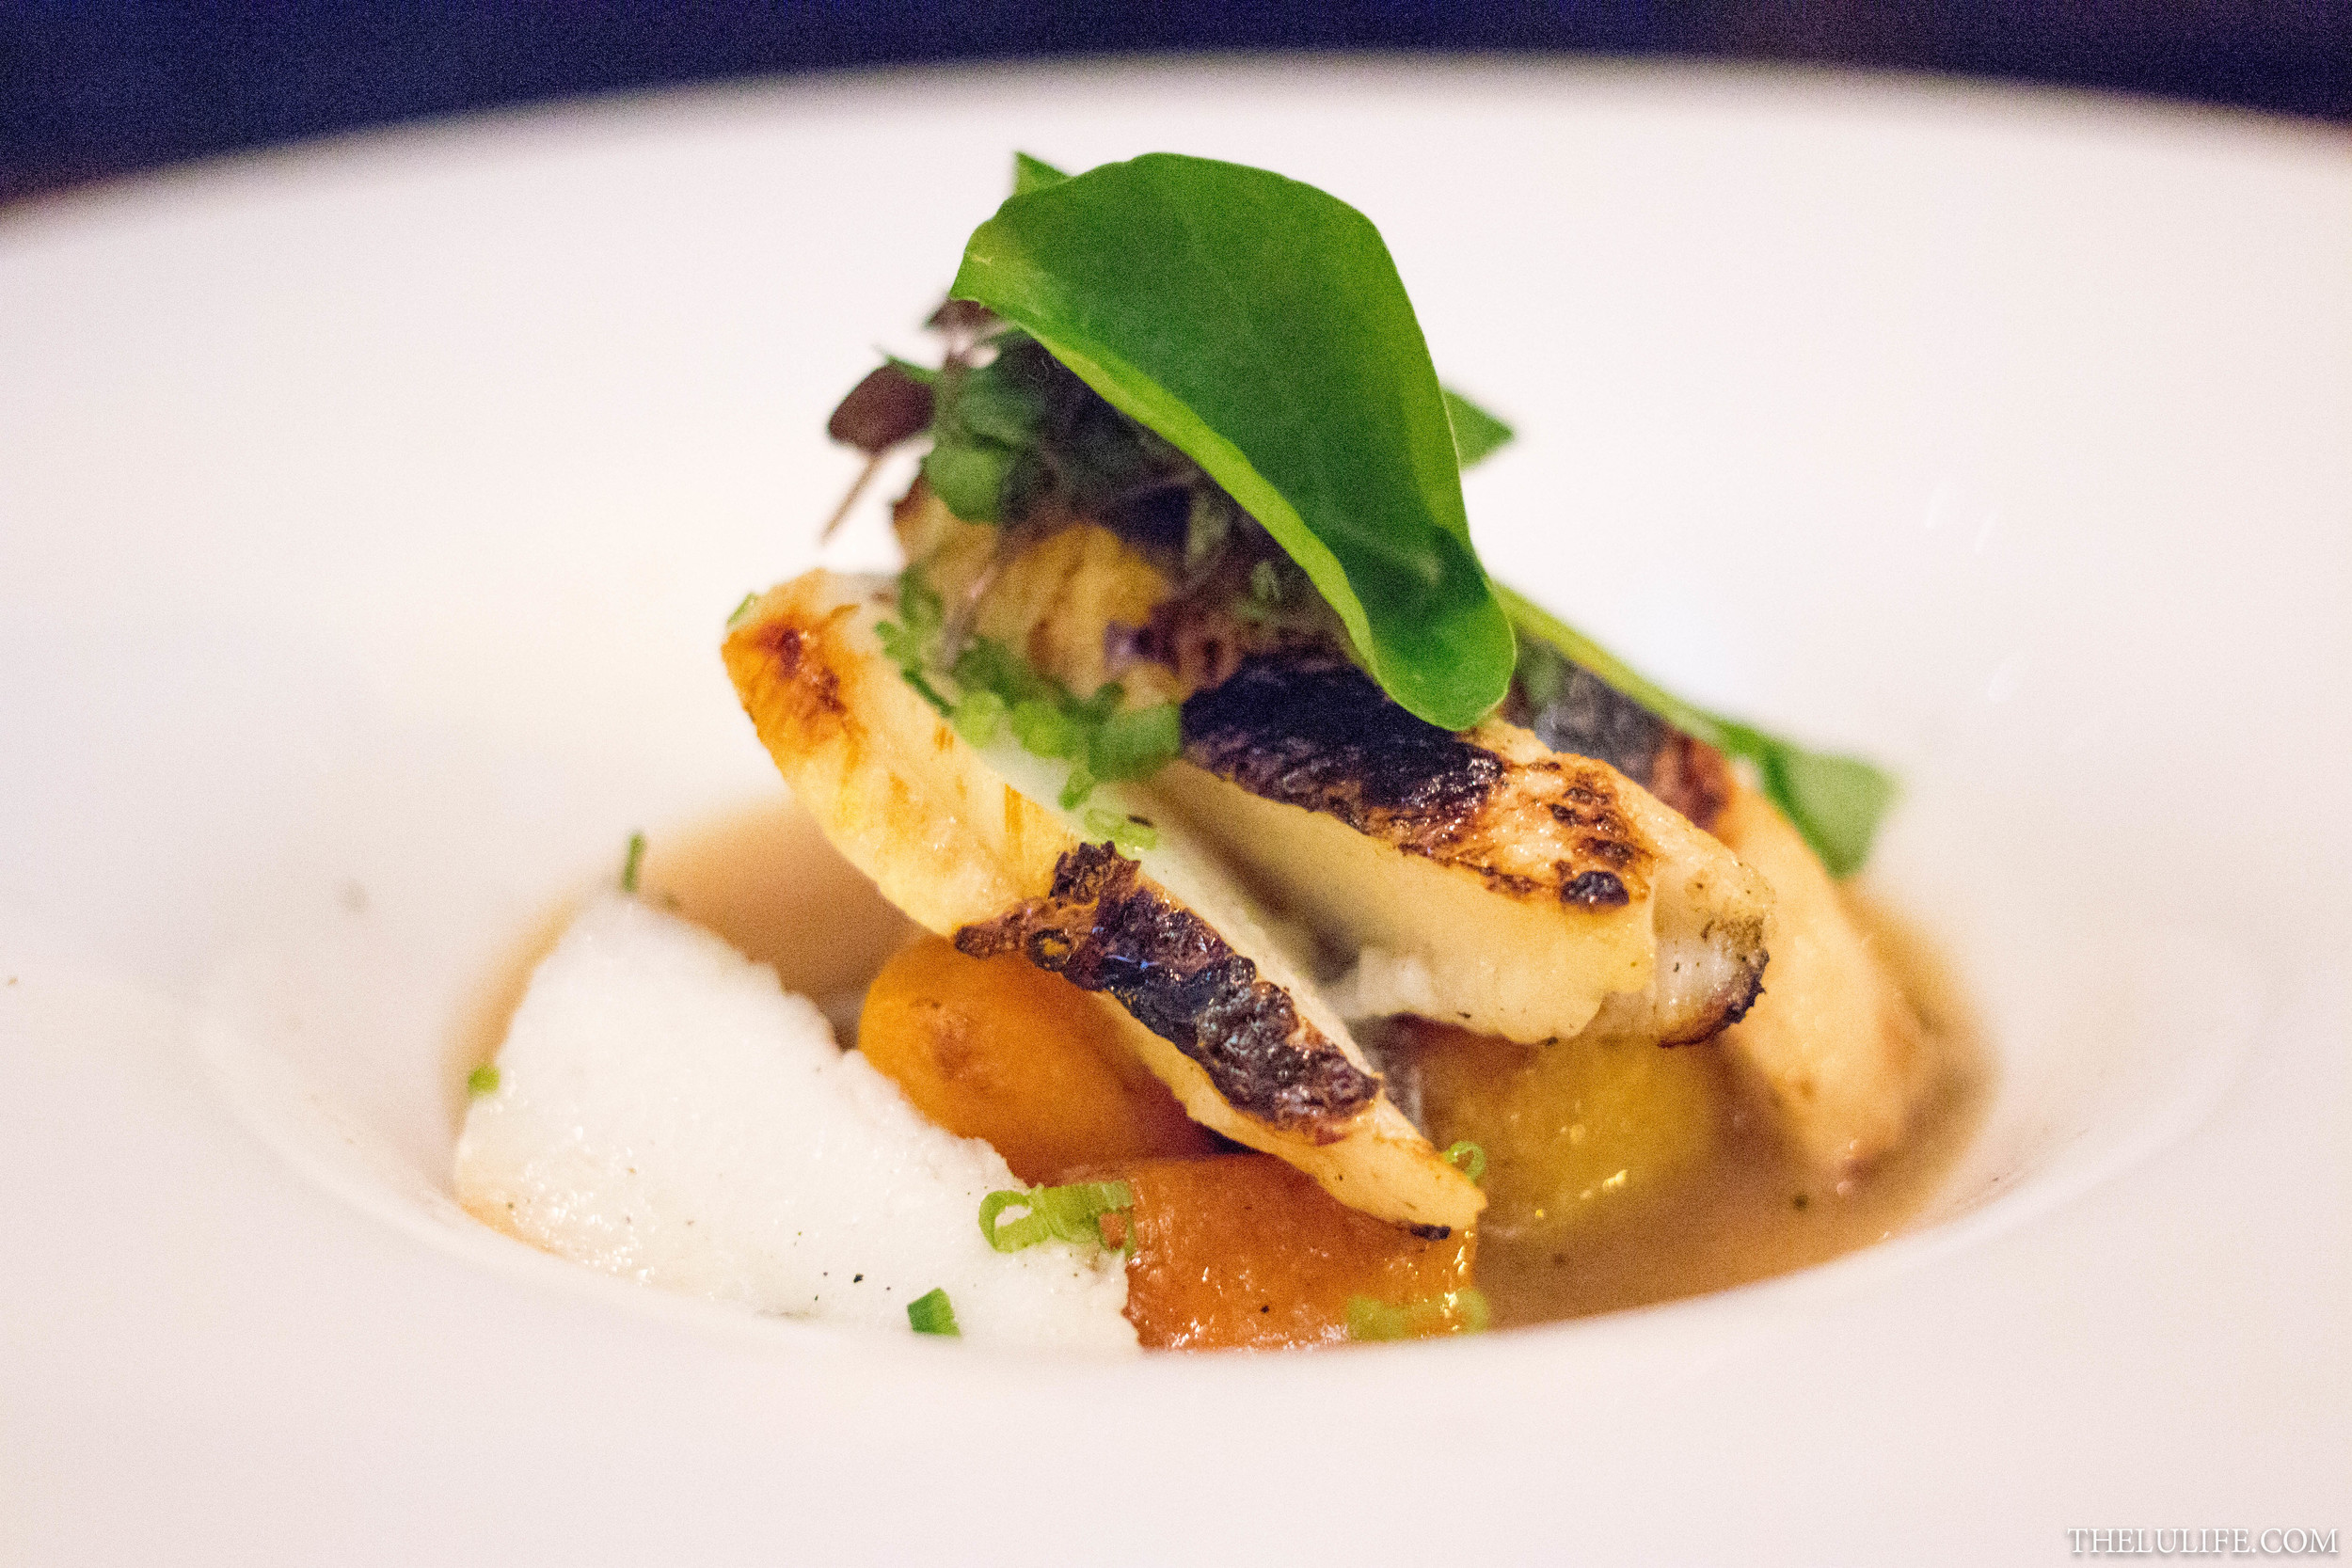 Grilled Chilean seabass with roasted butternut squash and peppercorn broth